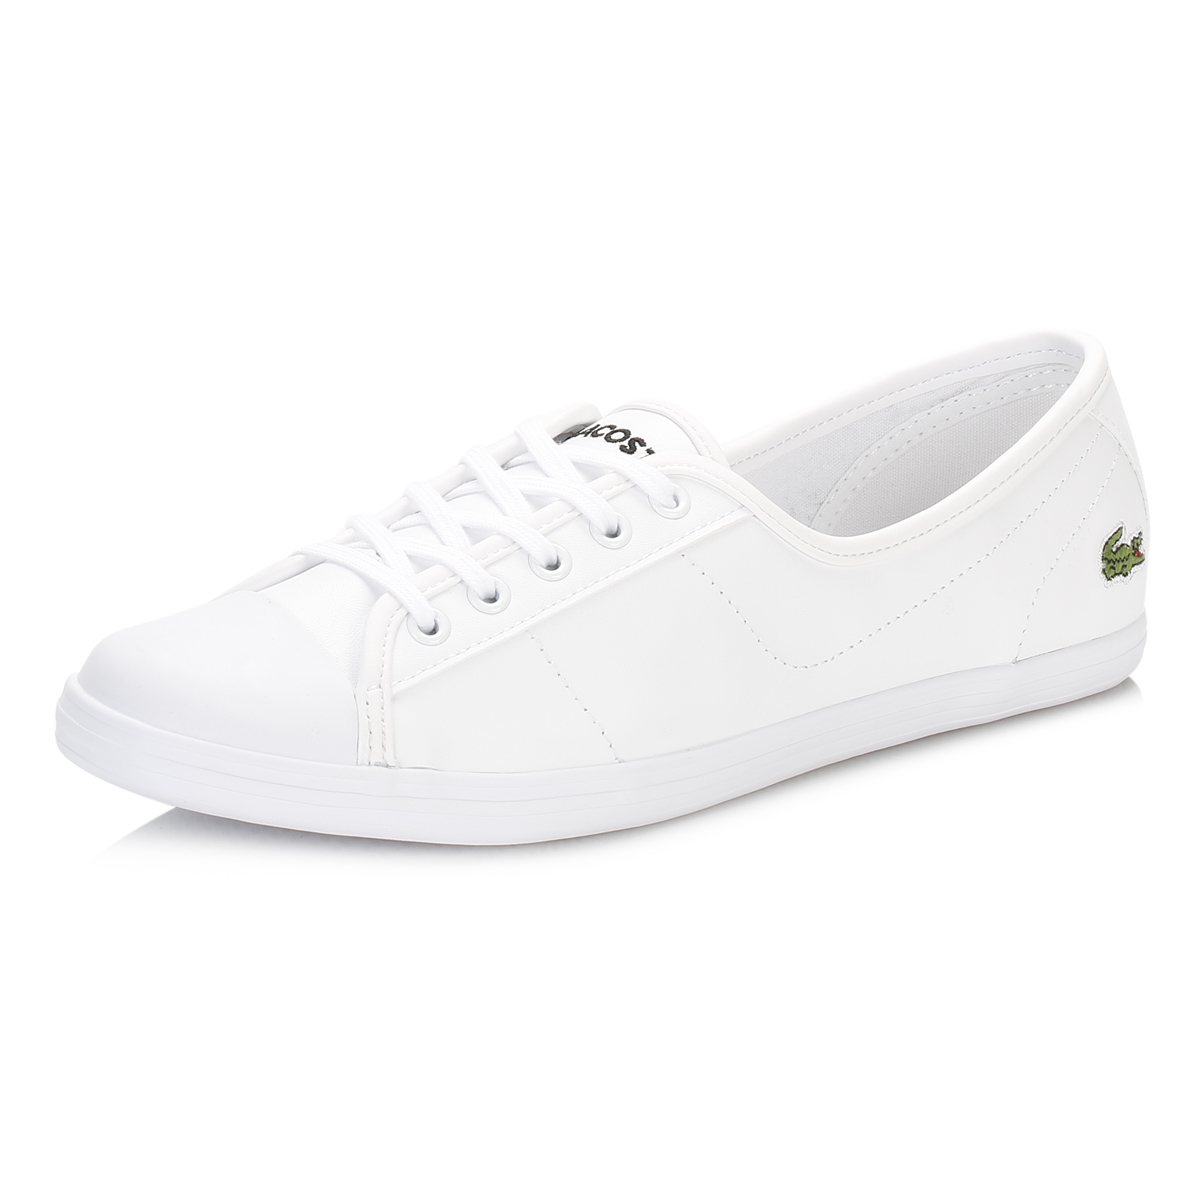 Lacoste Casual Shoes Canada